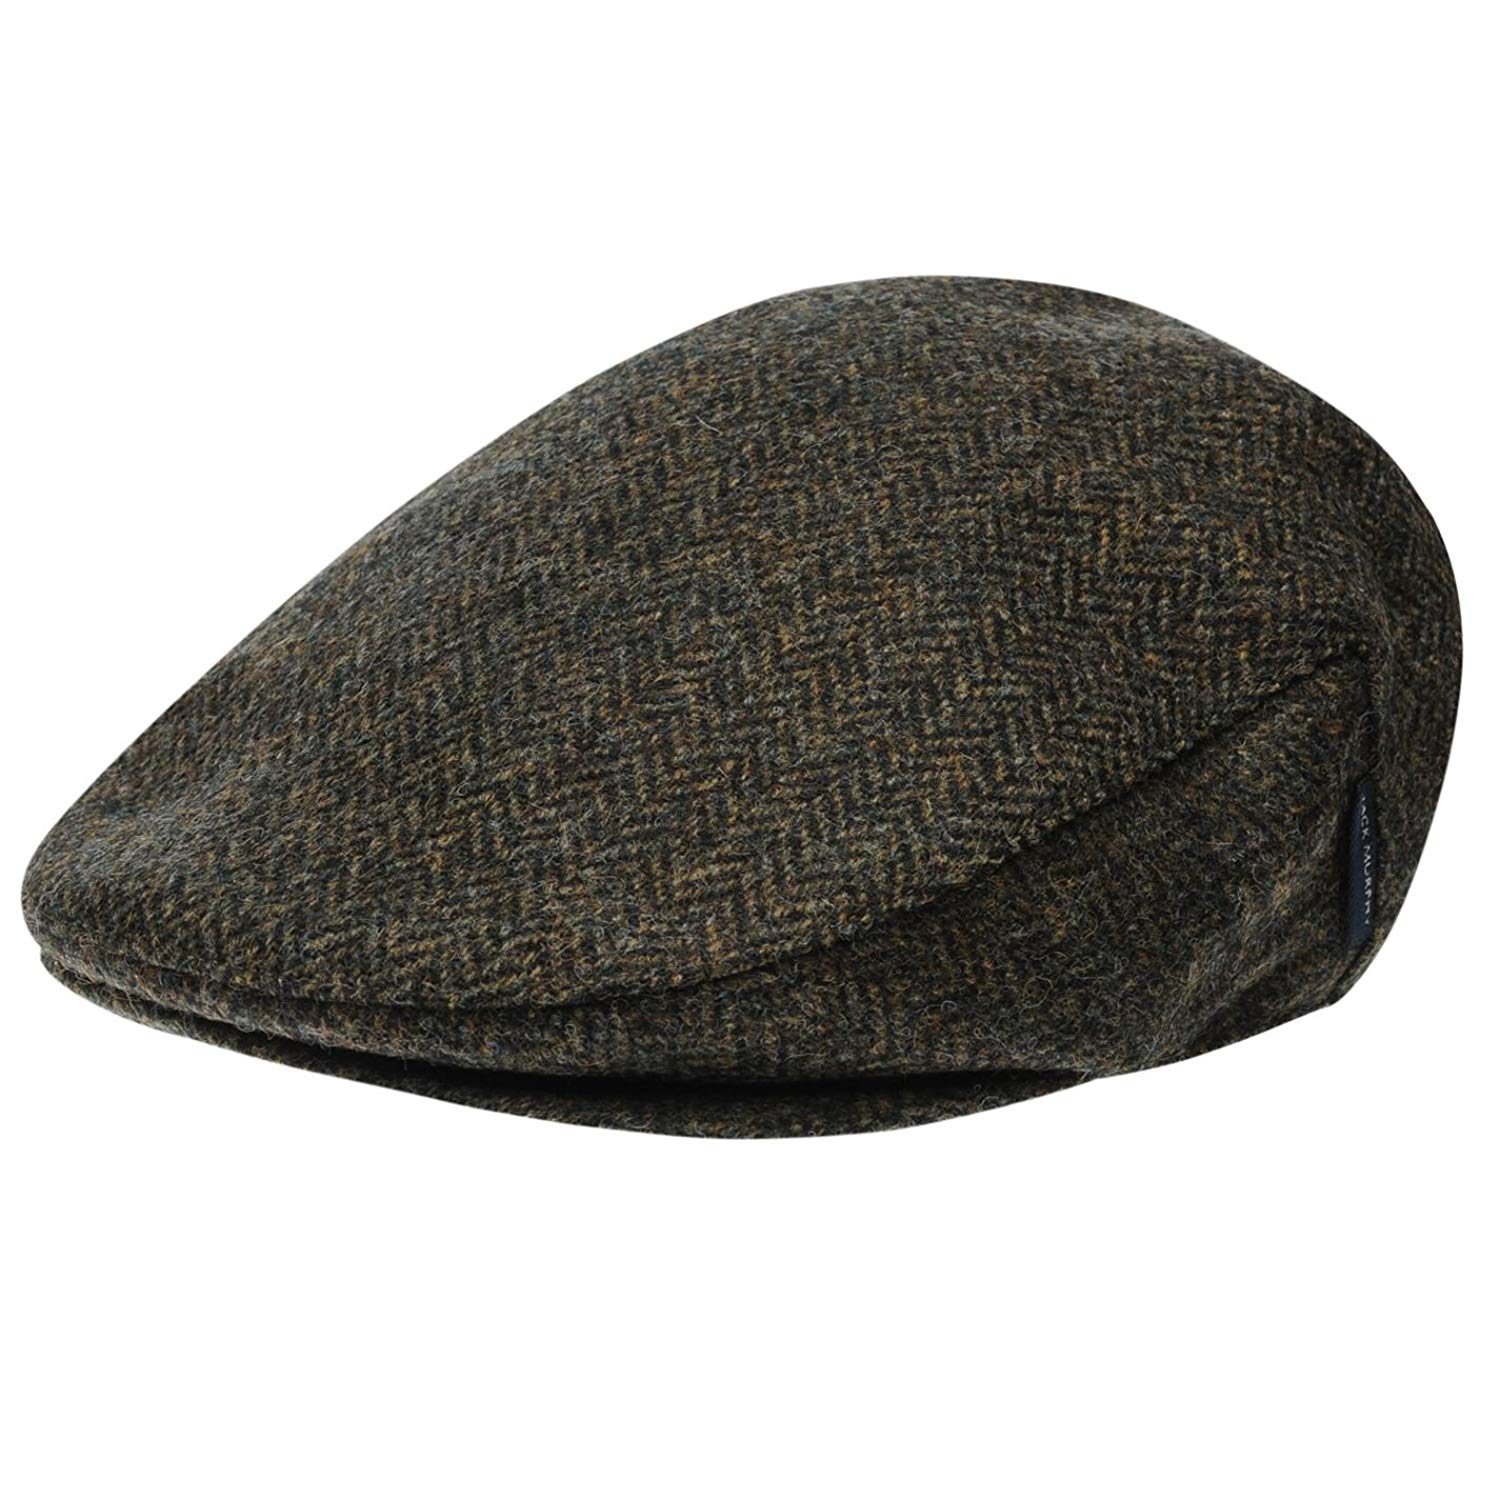 9def788fe Cheap Tweed Driving Cap, find Tweed Driving Cap deals on line at ...